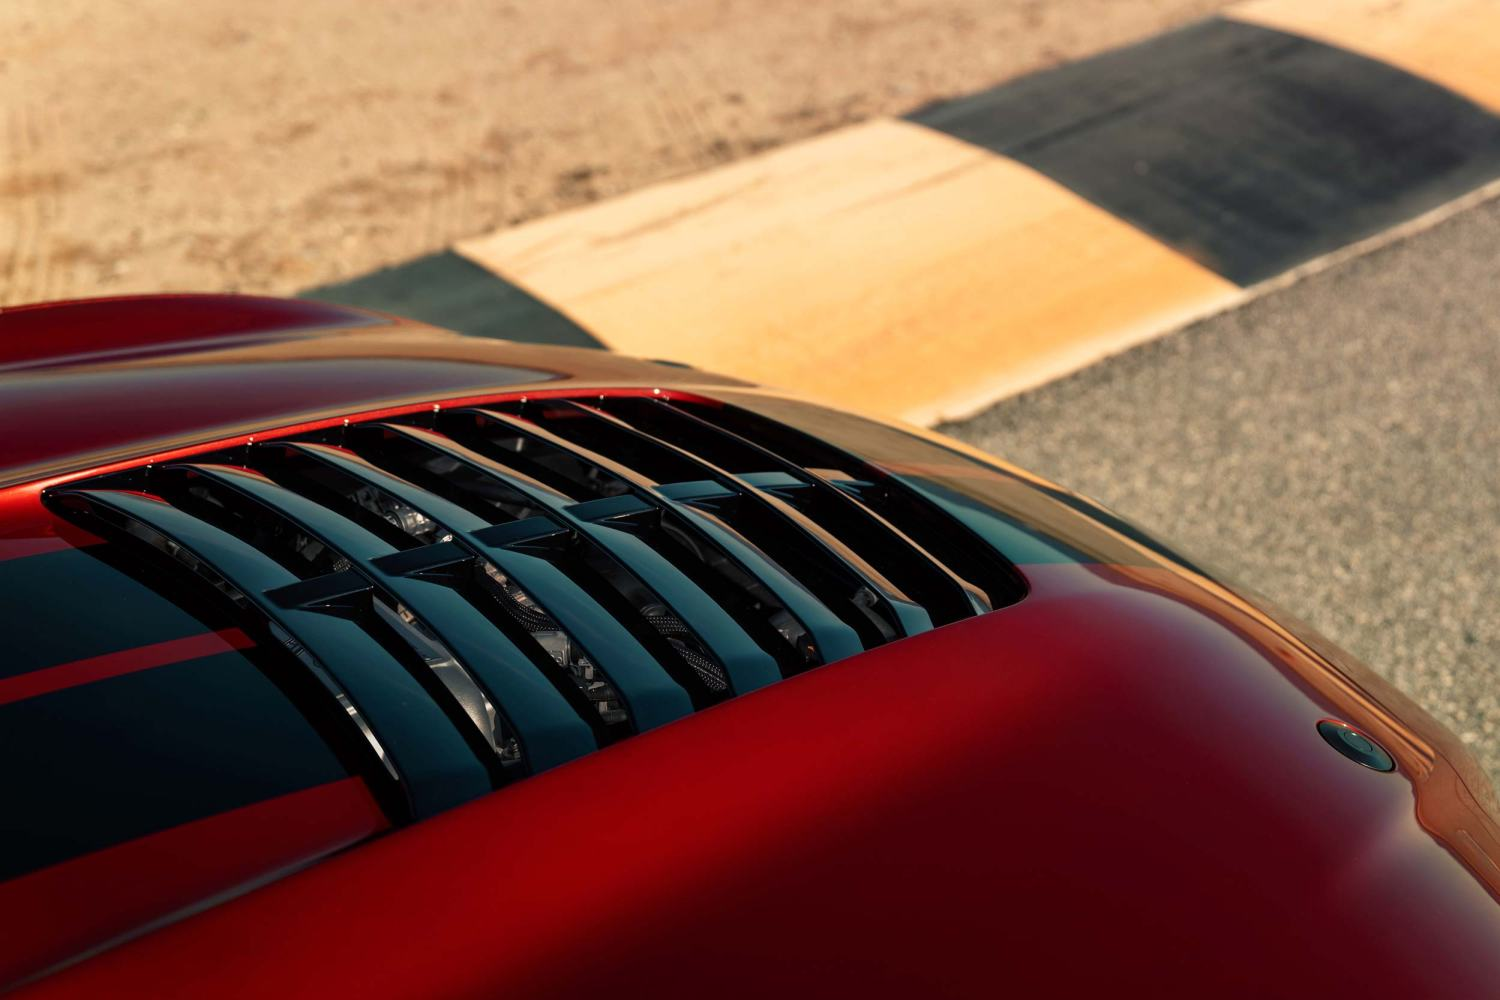 2020 Mustang Shelby GT500 hood vent